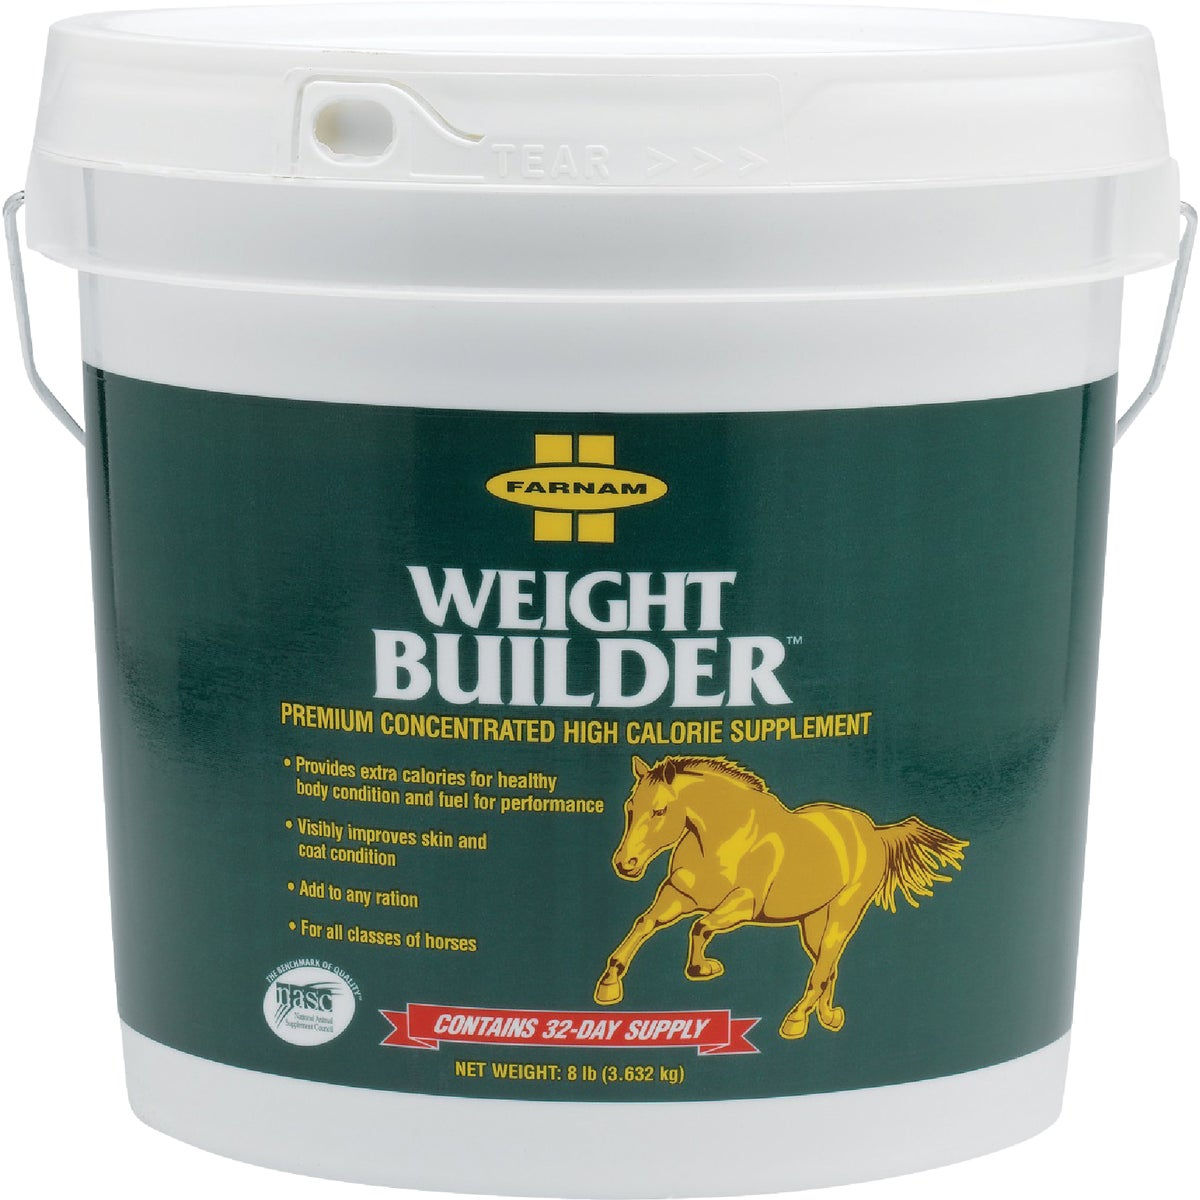 8LB WEIGHT BUILDER - 13701 by Farnam Central Life